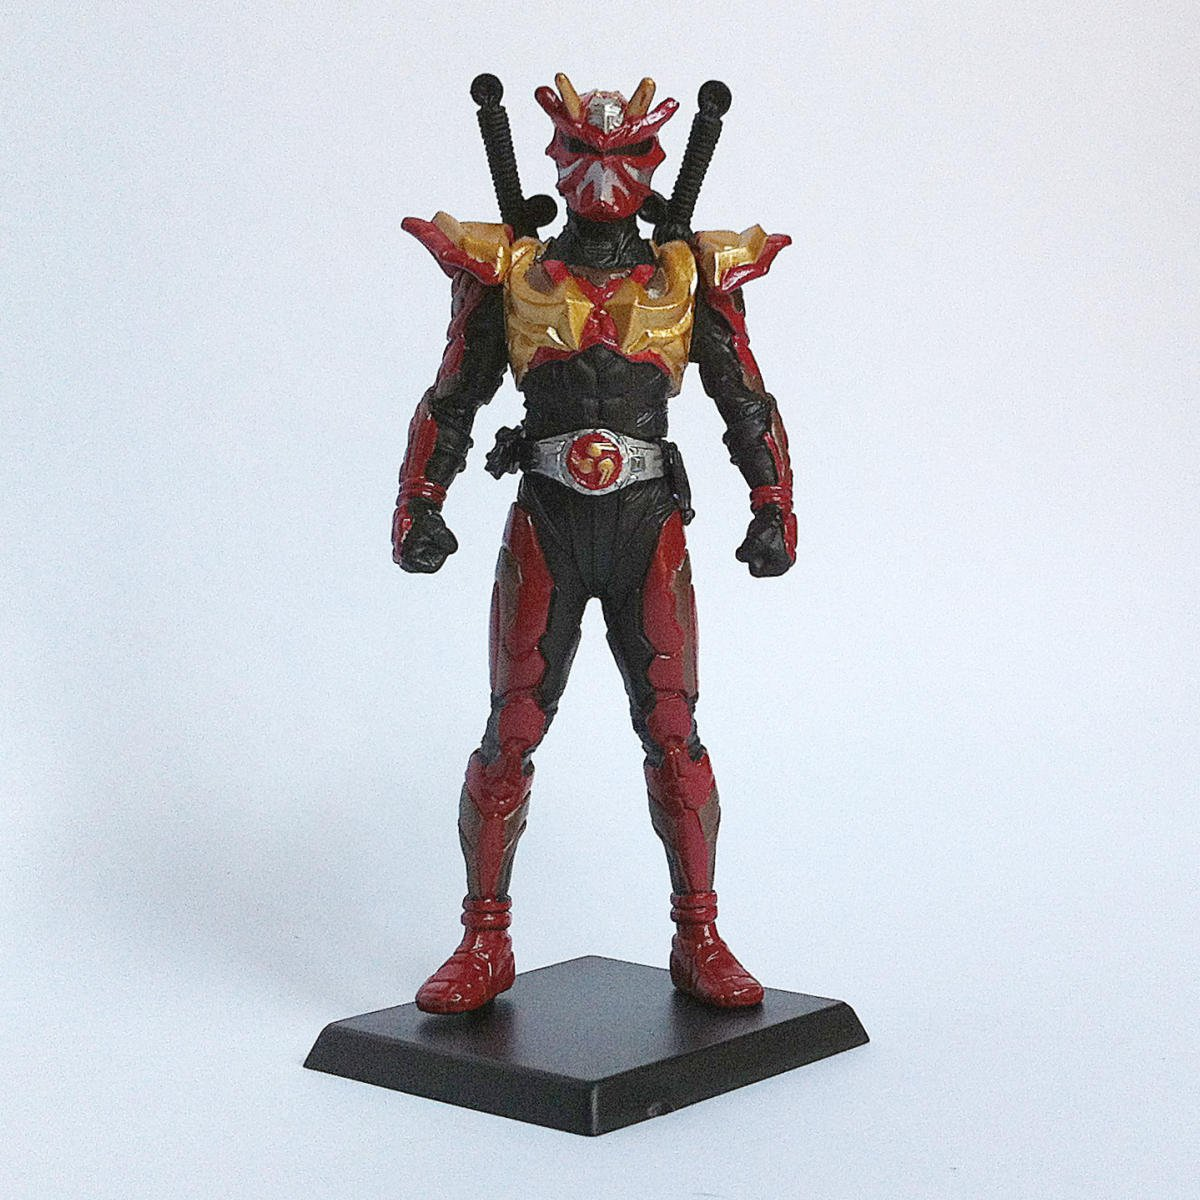 Kamen Rider Armed Hibiki from HG CORE Kamen Rider by Bandai